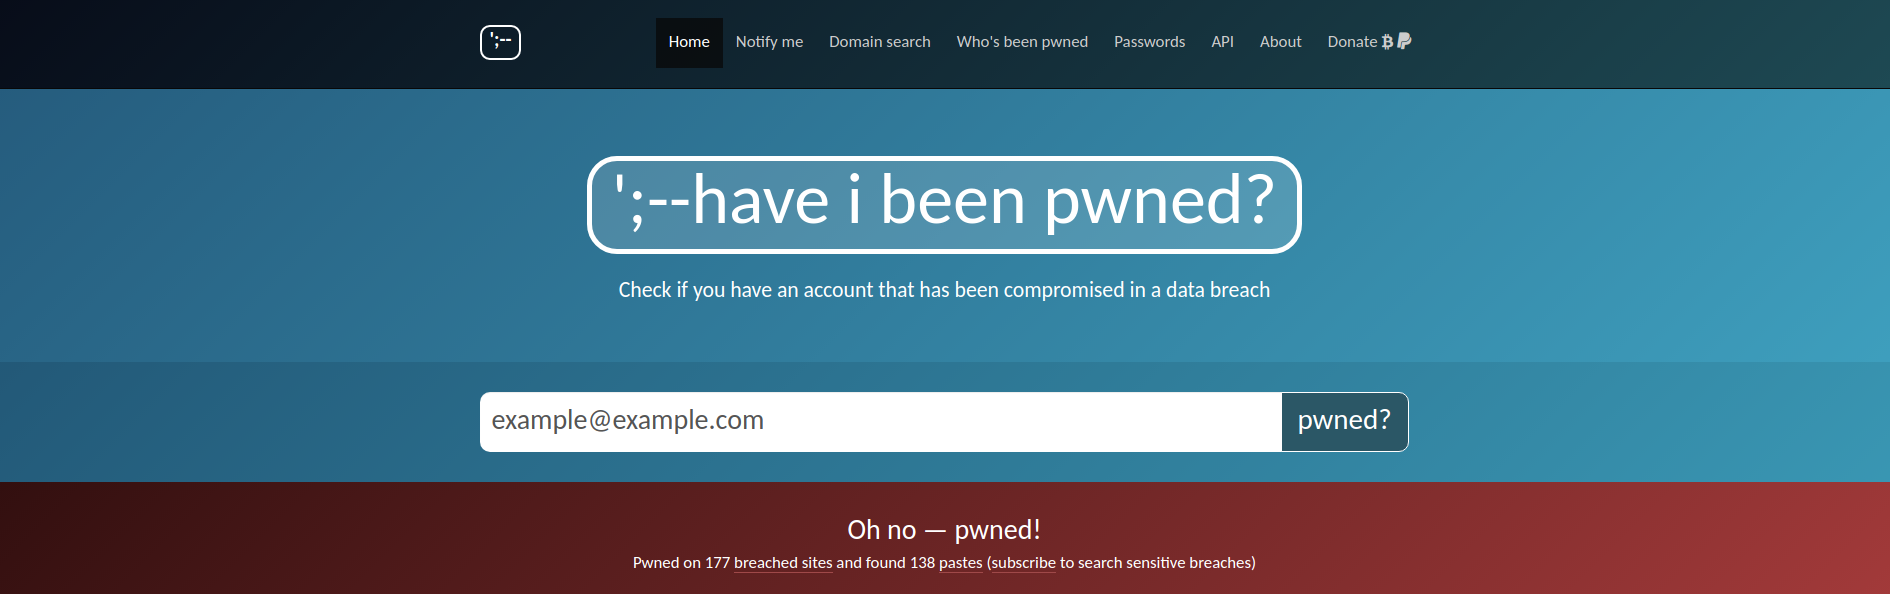 A screenshot of a results page from haveibeenpwned.com